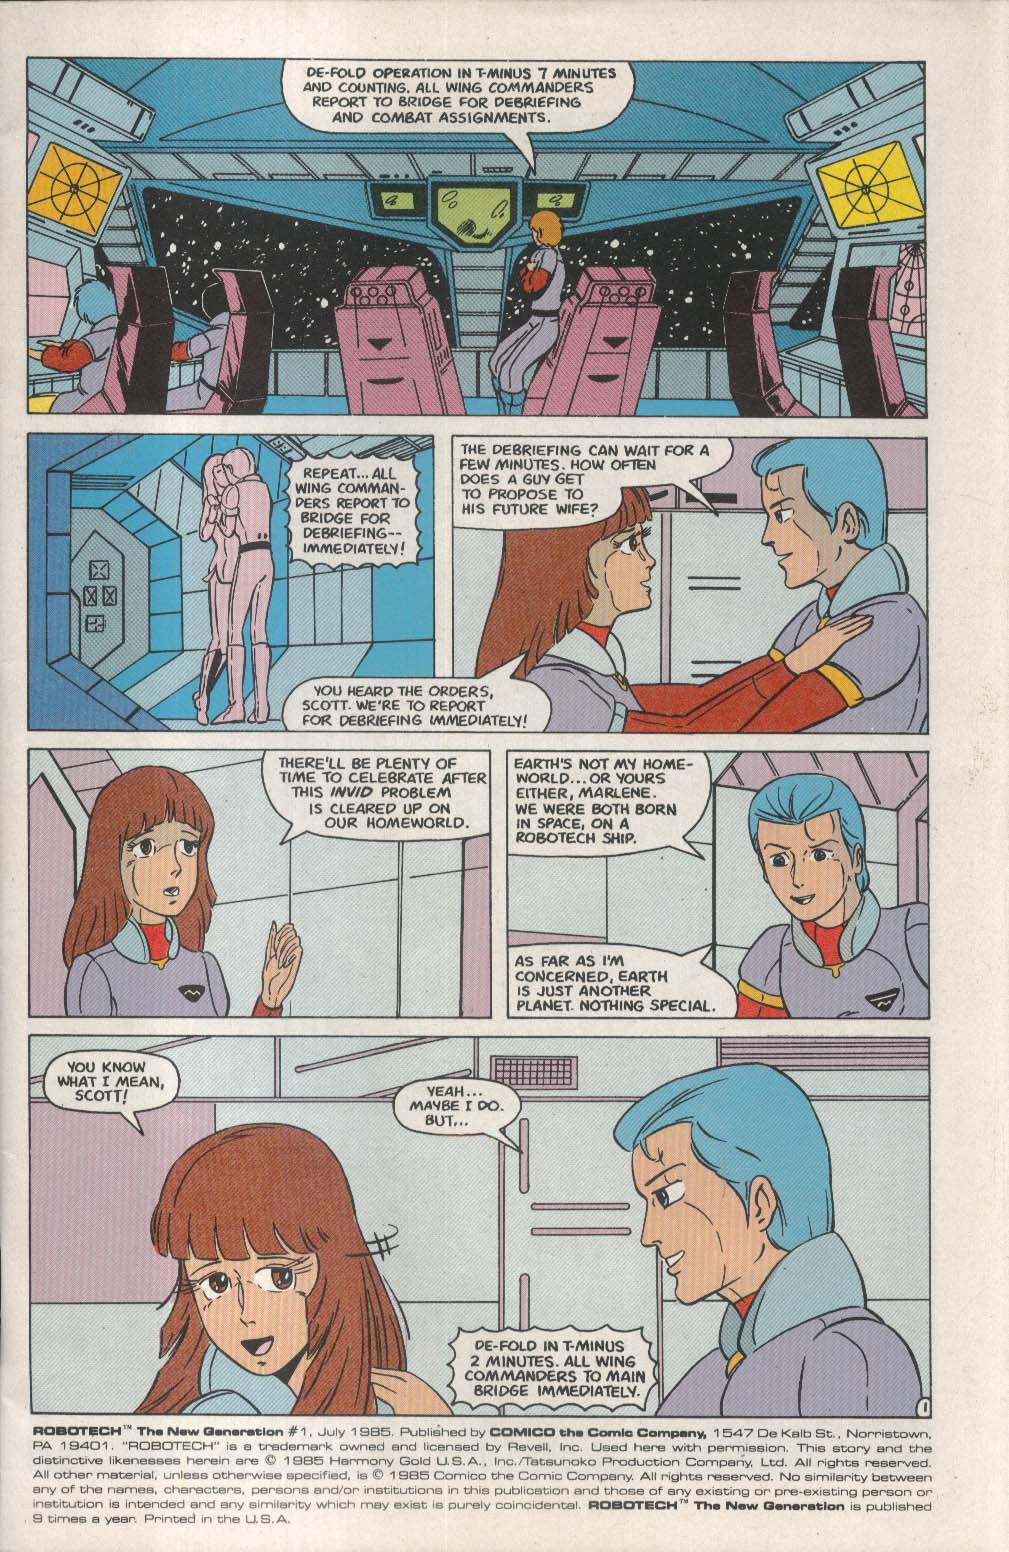 ROBOTECH New Generation #1 Comico comic book 7 1985